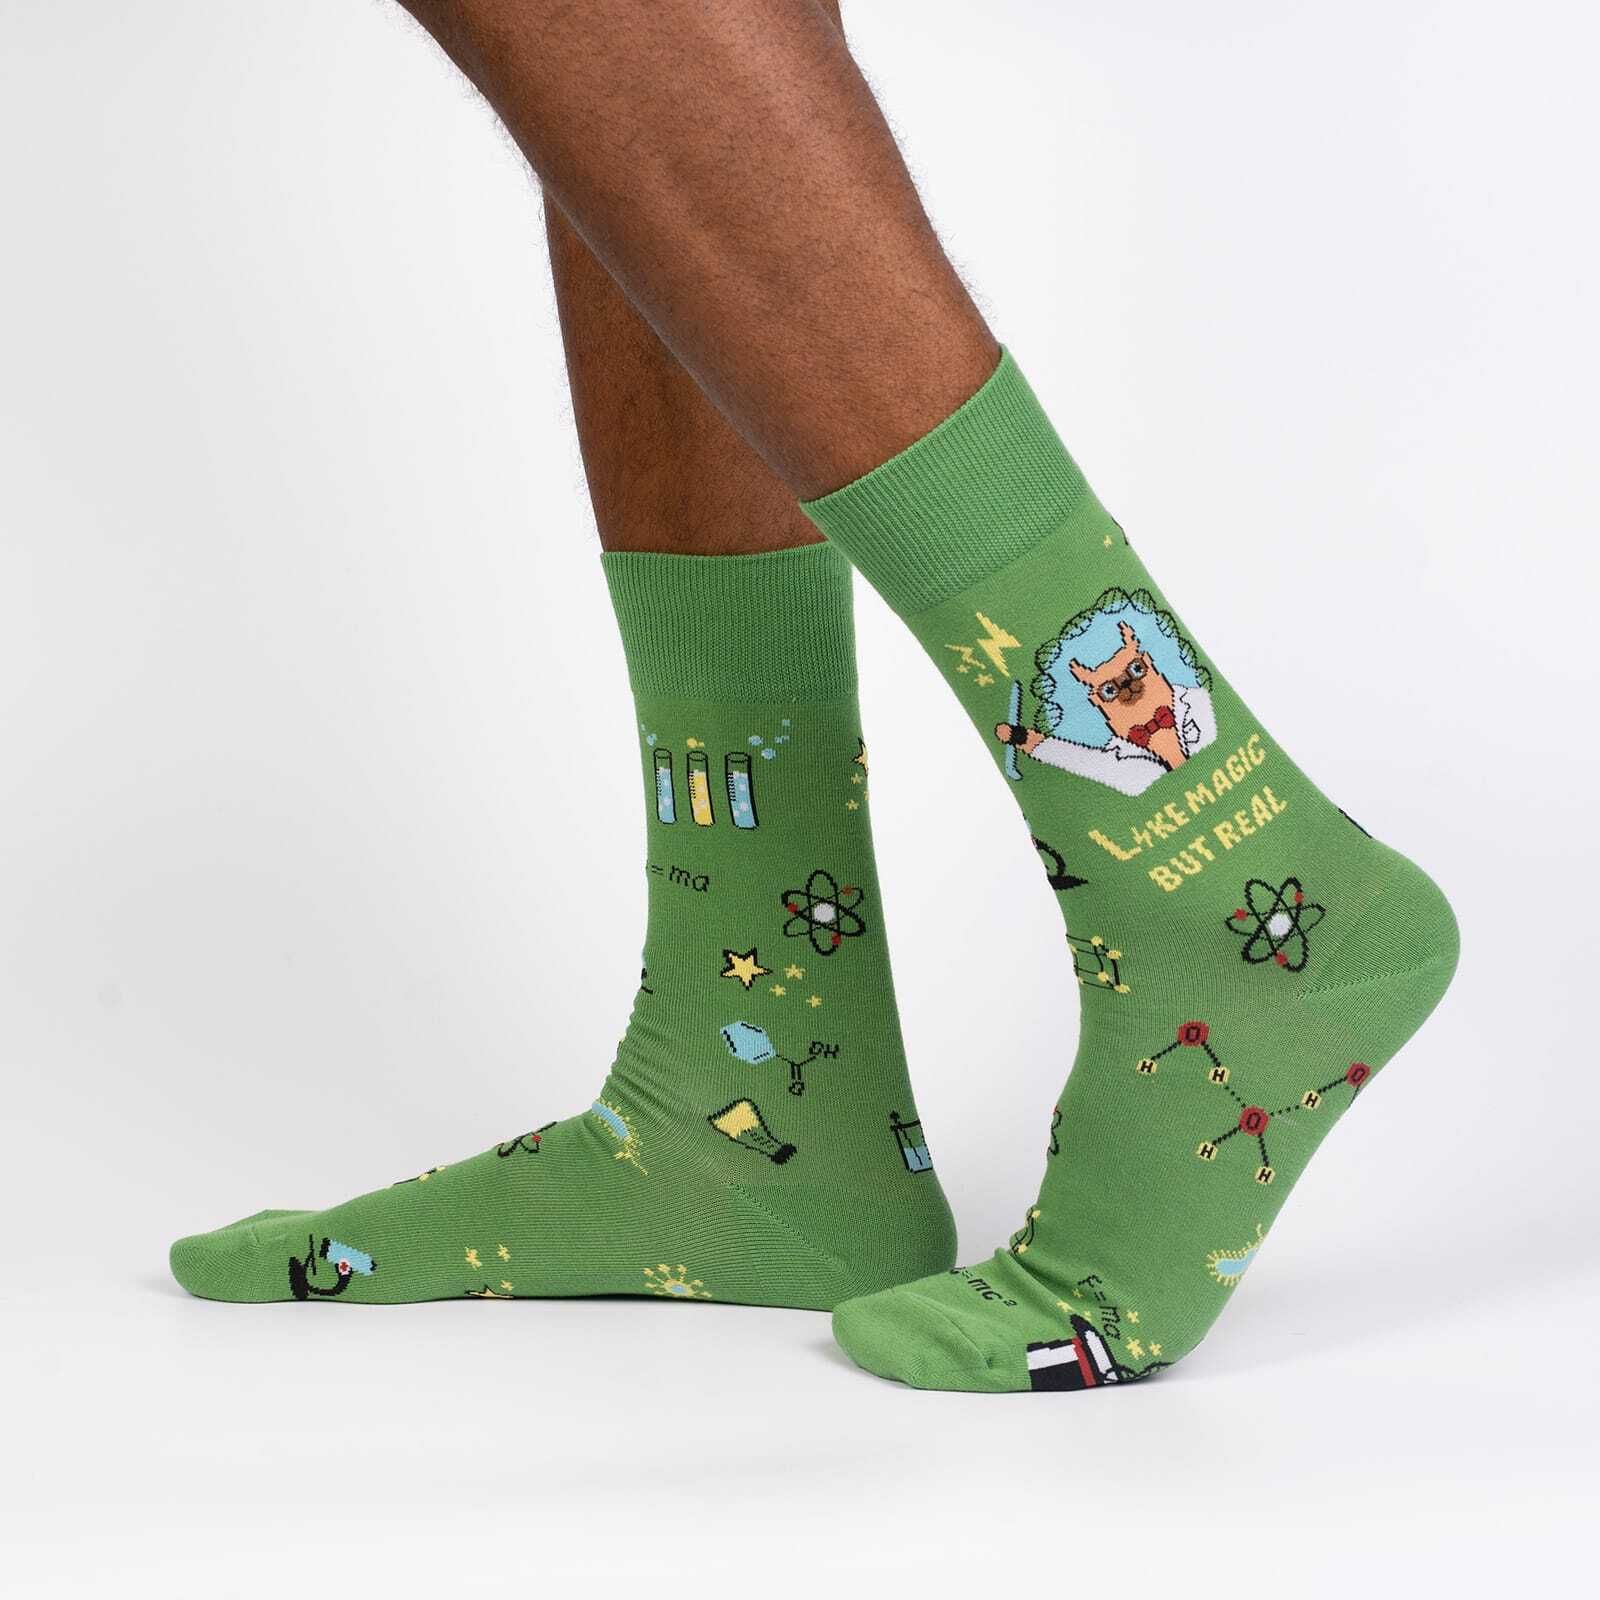 Trust Me, Llama Scientist - Funny Llama Science Crew Socks Green - Men's in Green